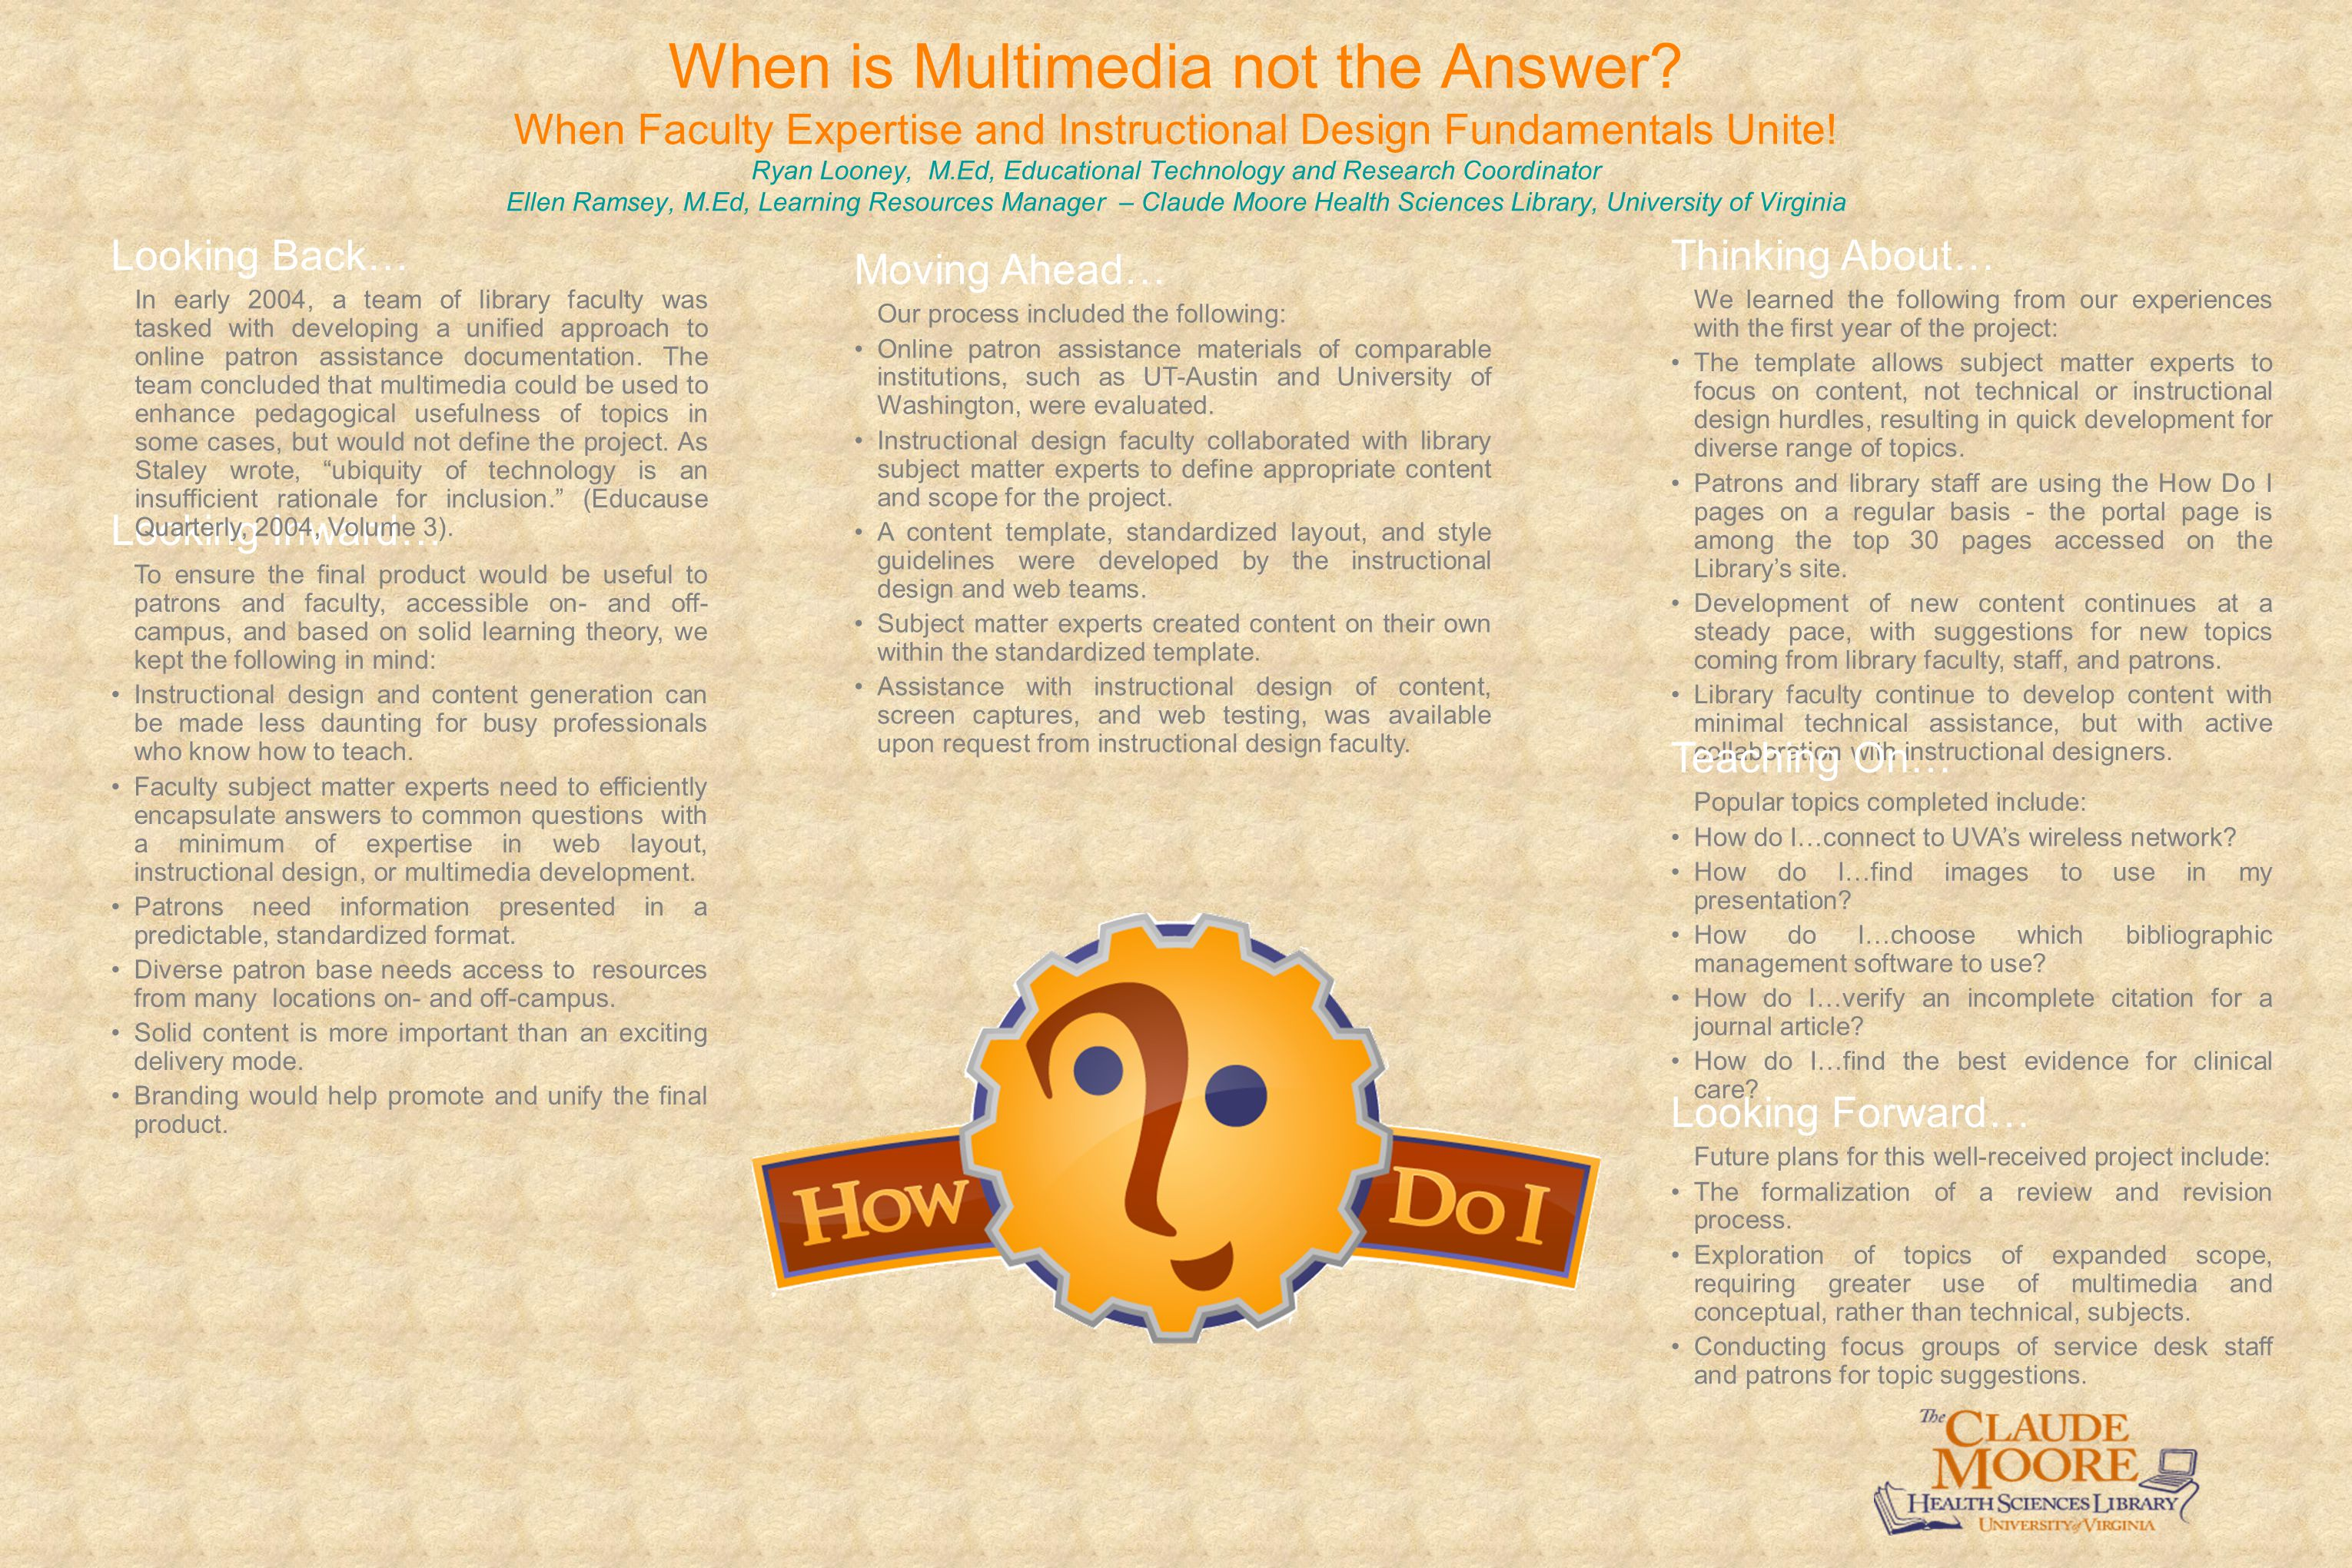 When is Multimedia not the Answer.